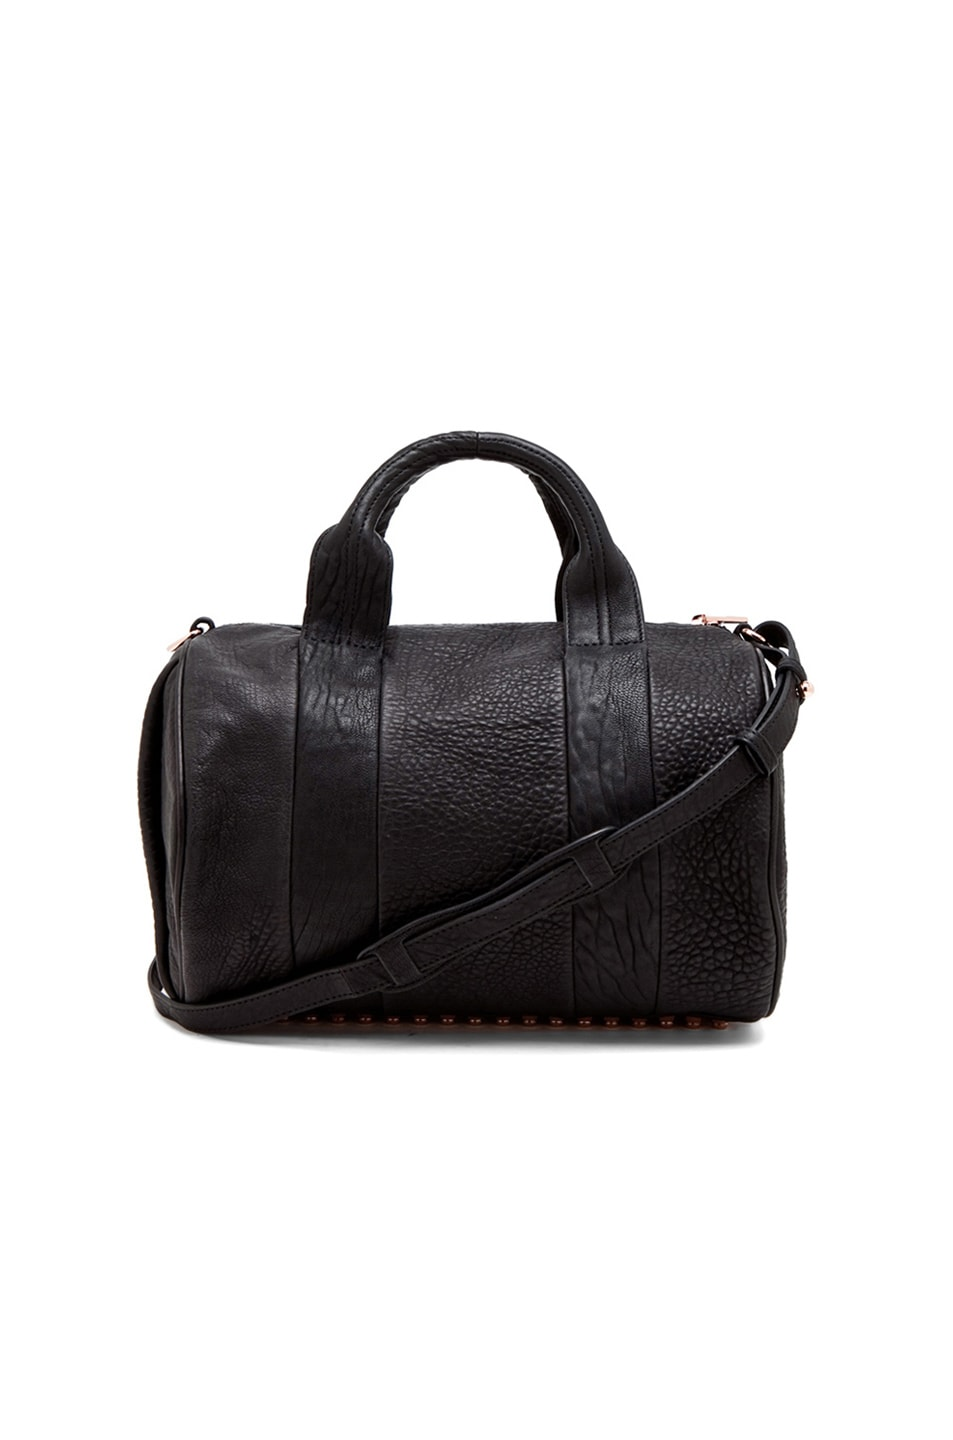 Image 1 of Alexander Wang Rocco Satchel with Rose Gold Hardware in Black